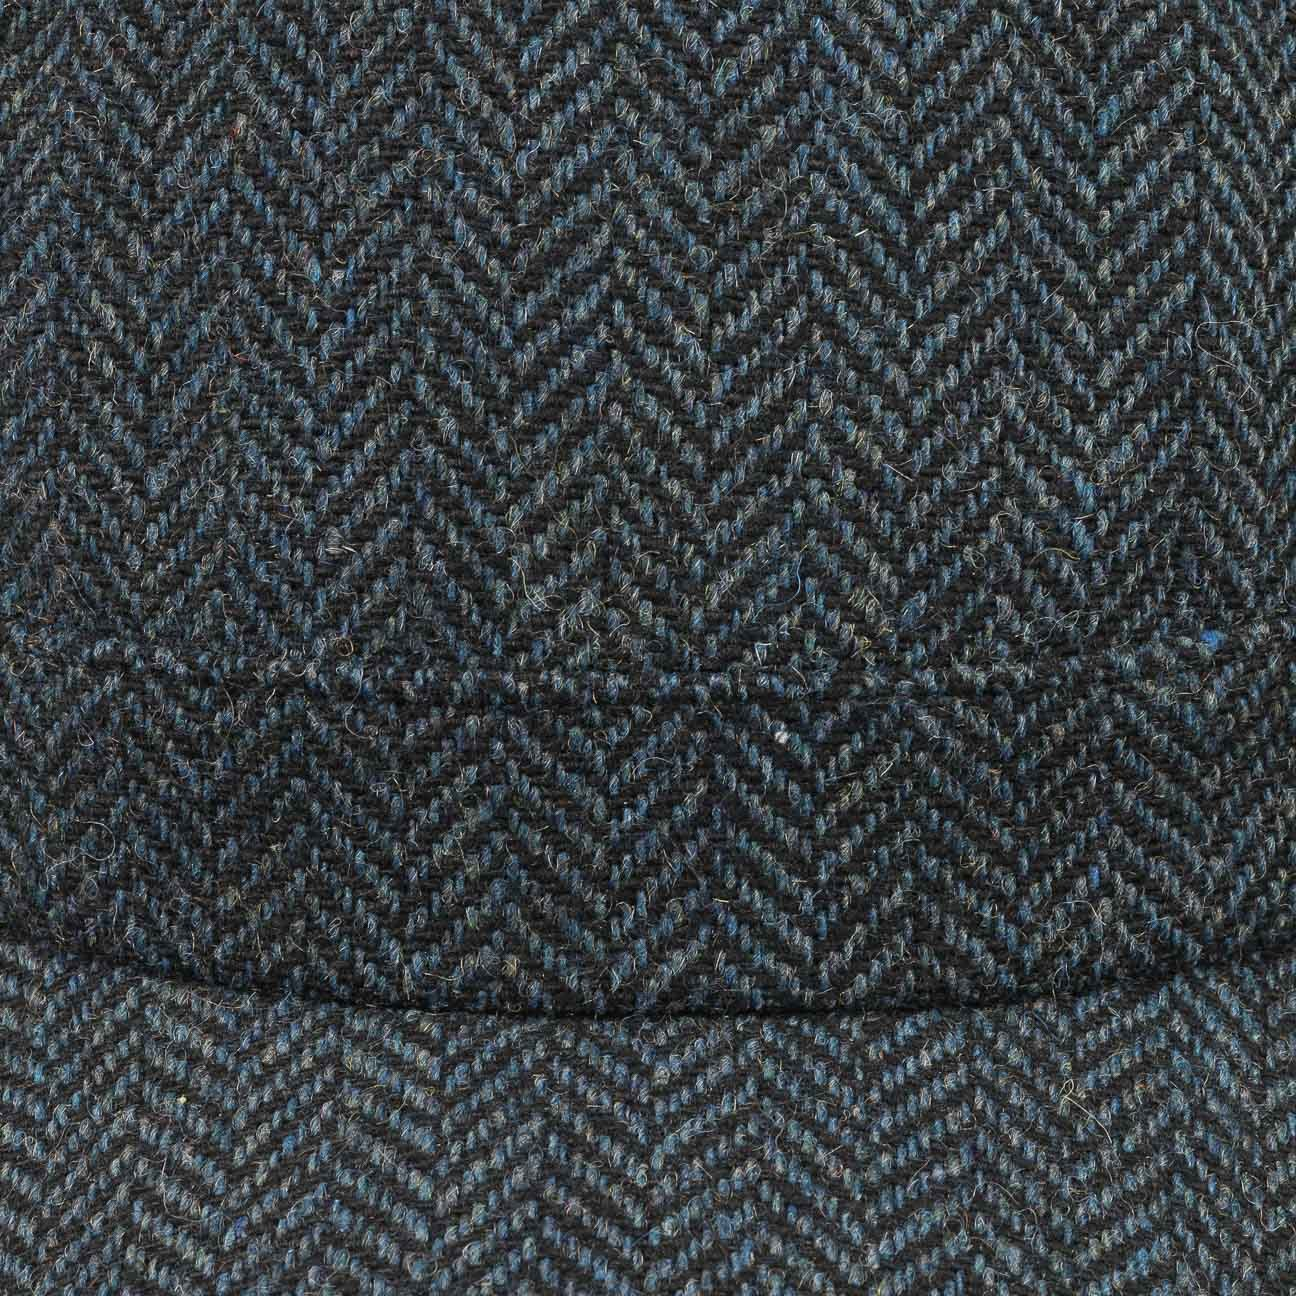 dd9e6631463412 Lipodo Herringbone Army Cap | Peaked Cap for Men/Women | Wool Cap | Winter  Cap Military Look | Autumn/Winter Sports Cap | Black-Blue One Size:  Amazon.co.uk: ...